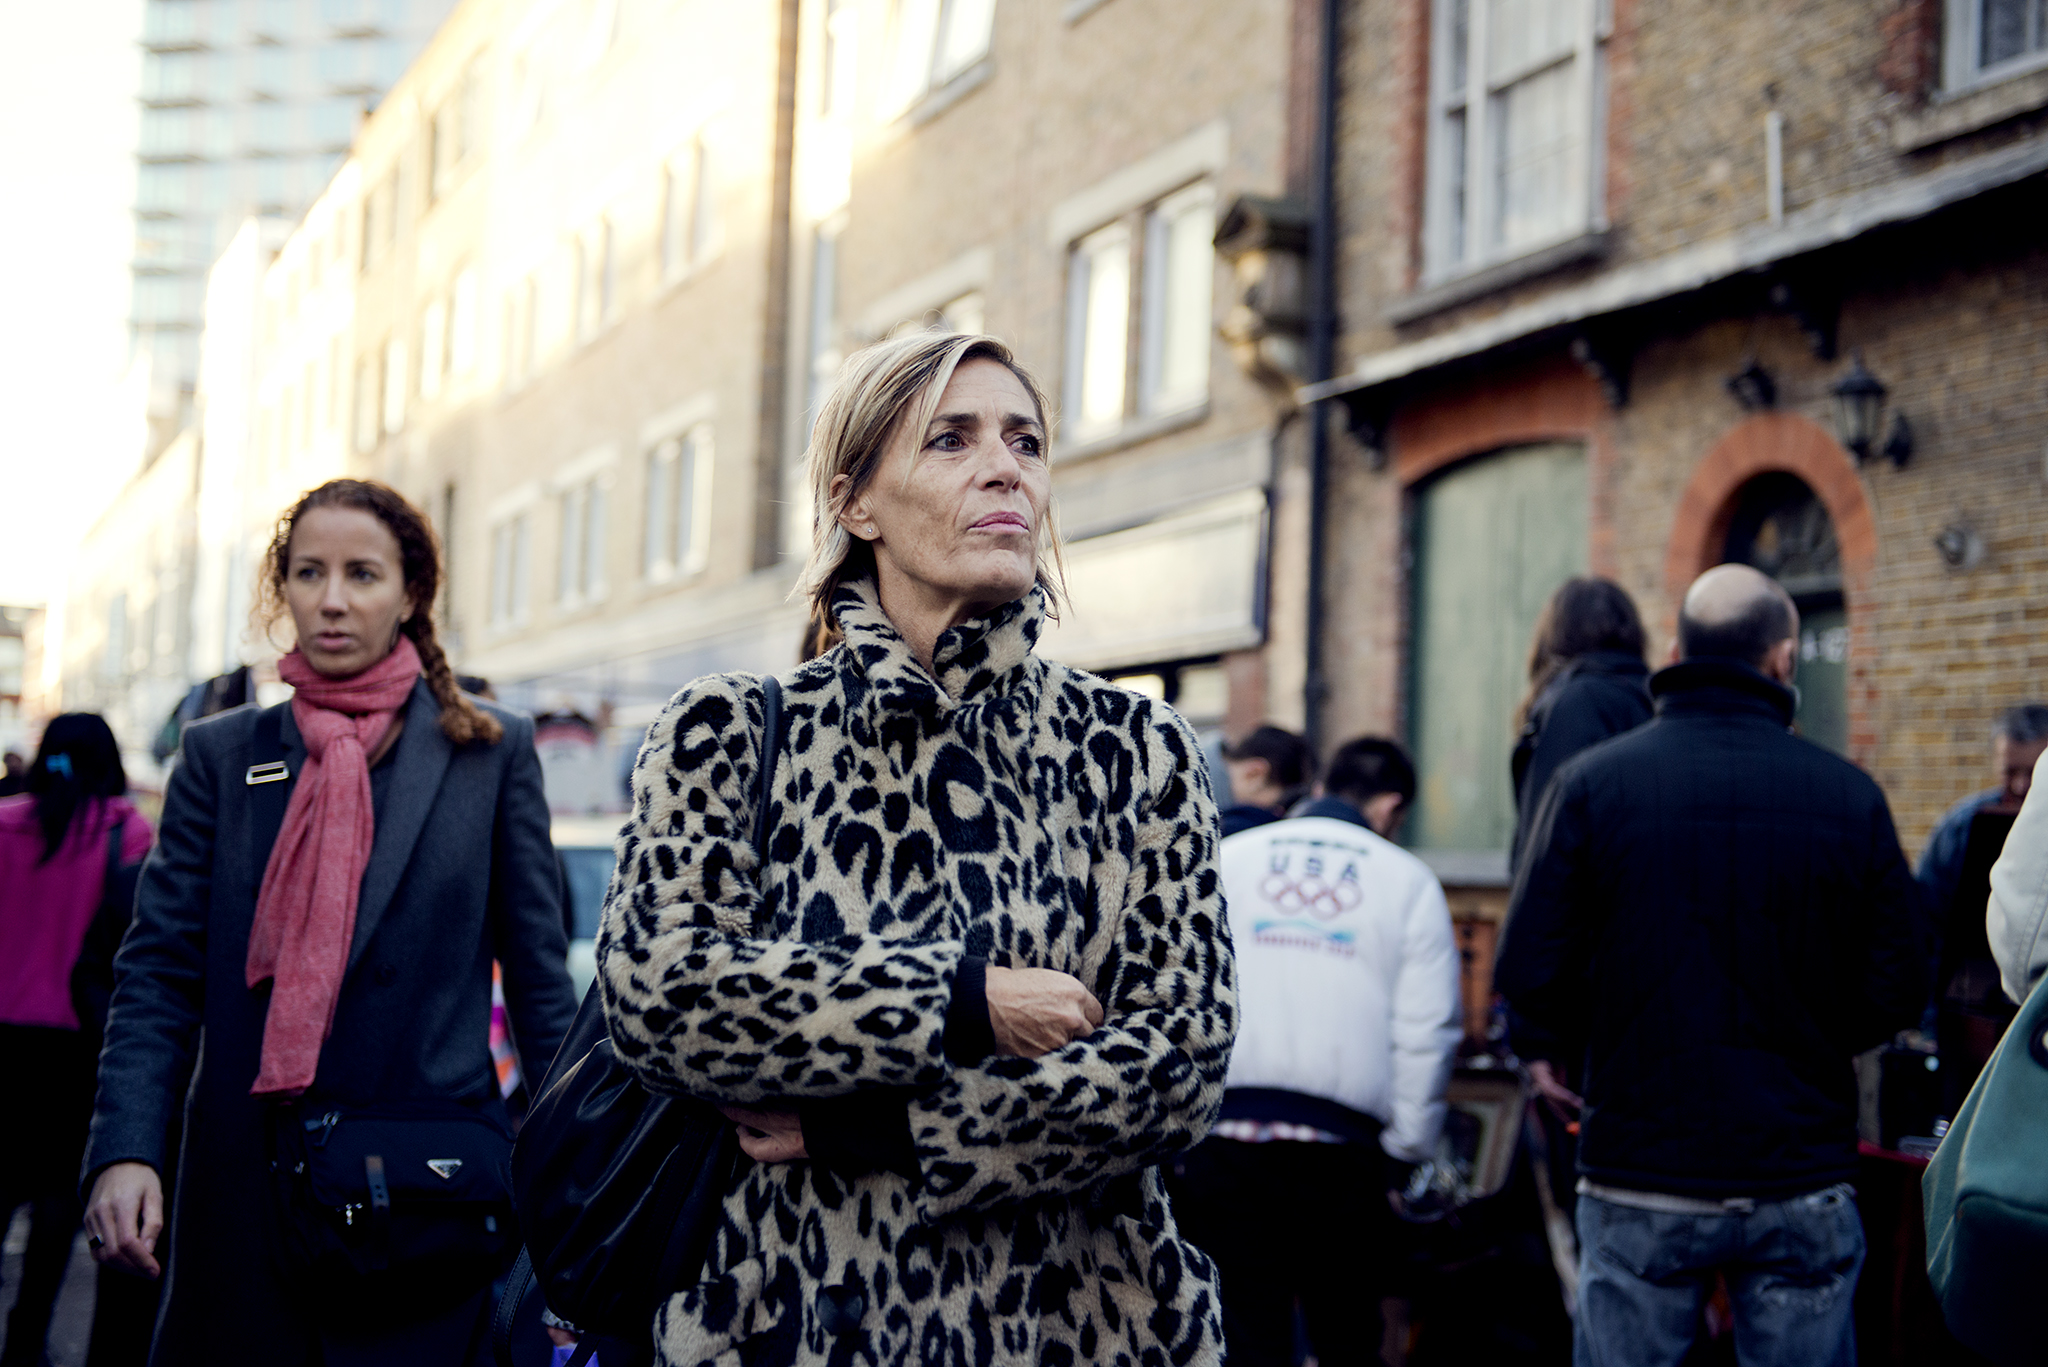 Woman in leopard print coat stares pensively into the distance